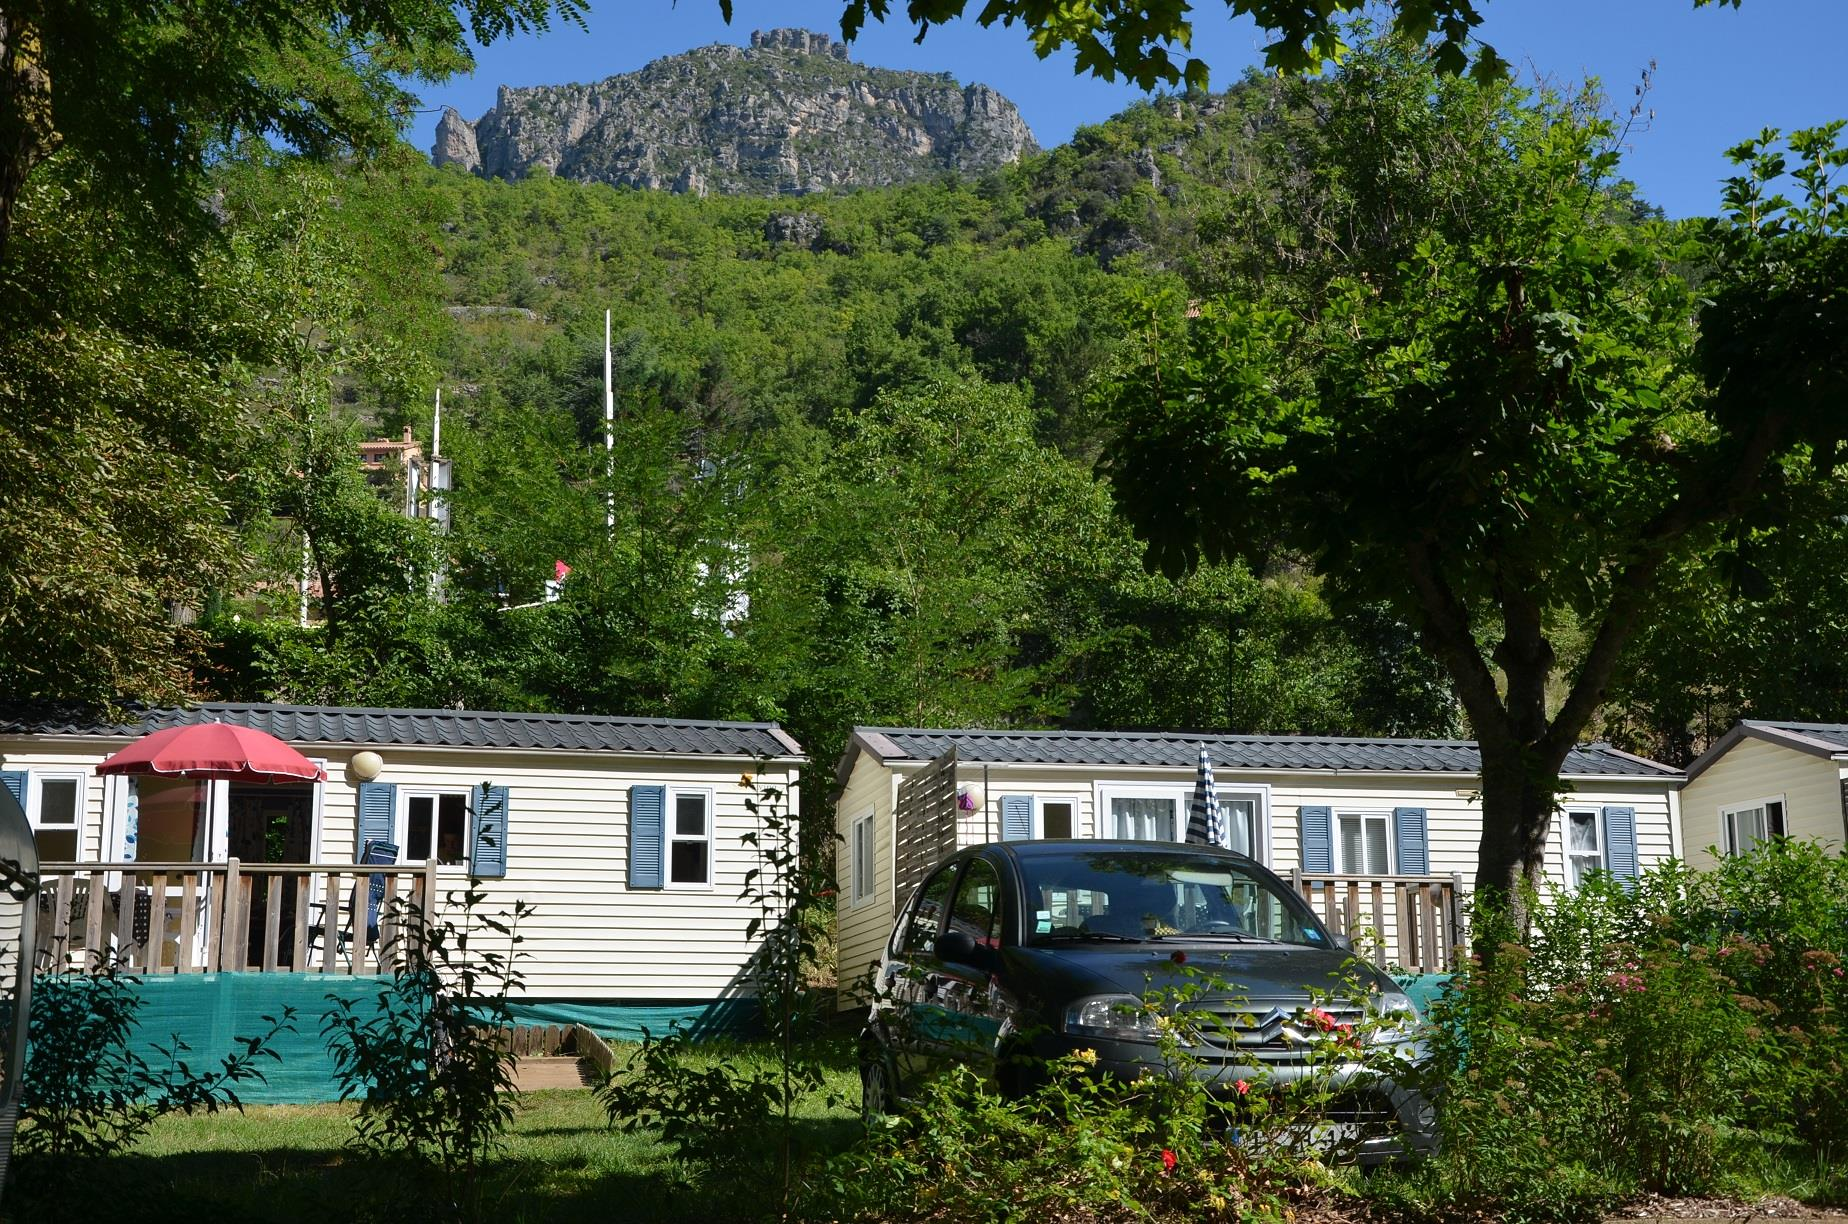 Accommodation - Mobilhome Terrace - Camping LA MUSE